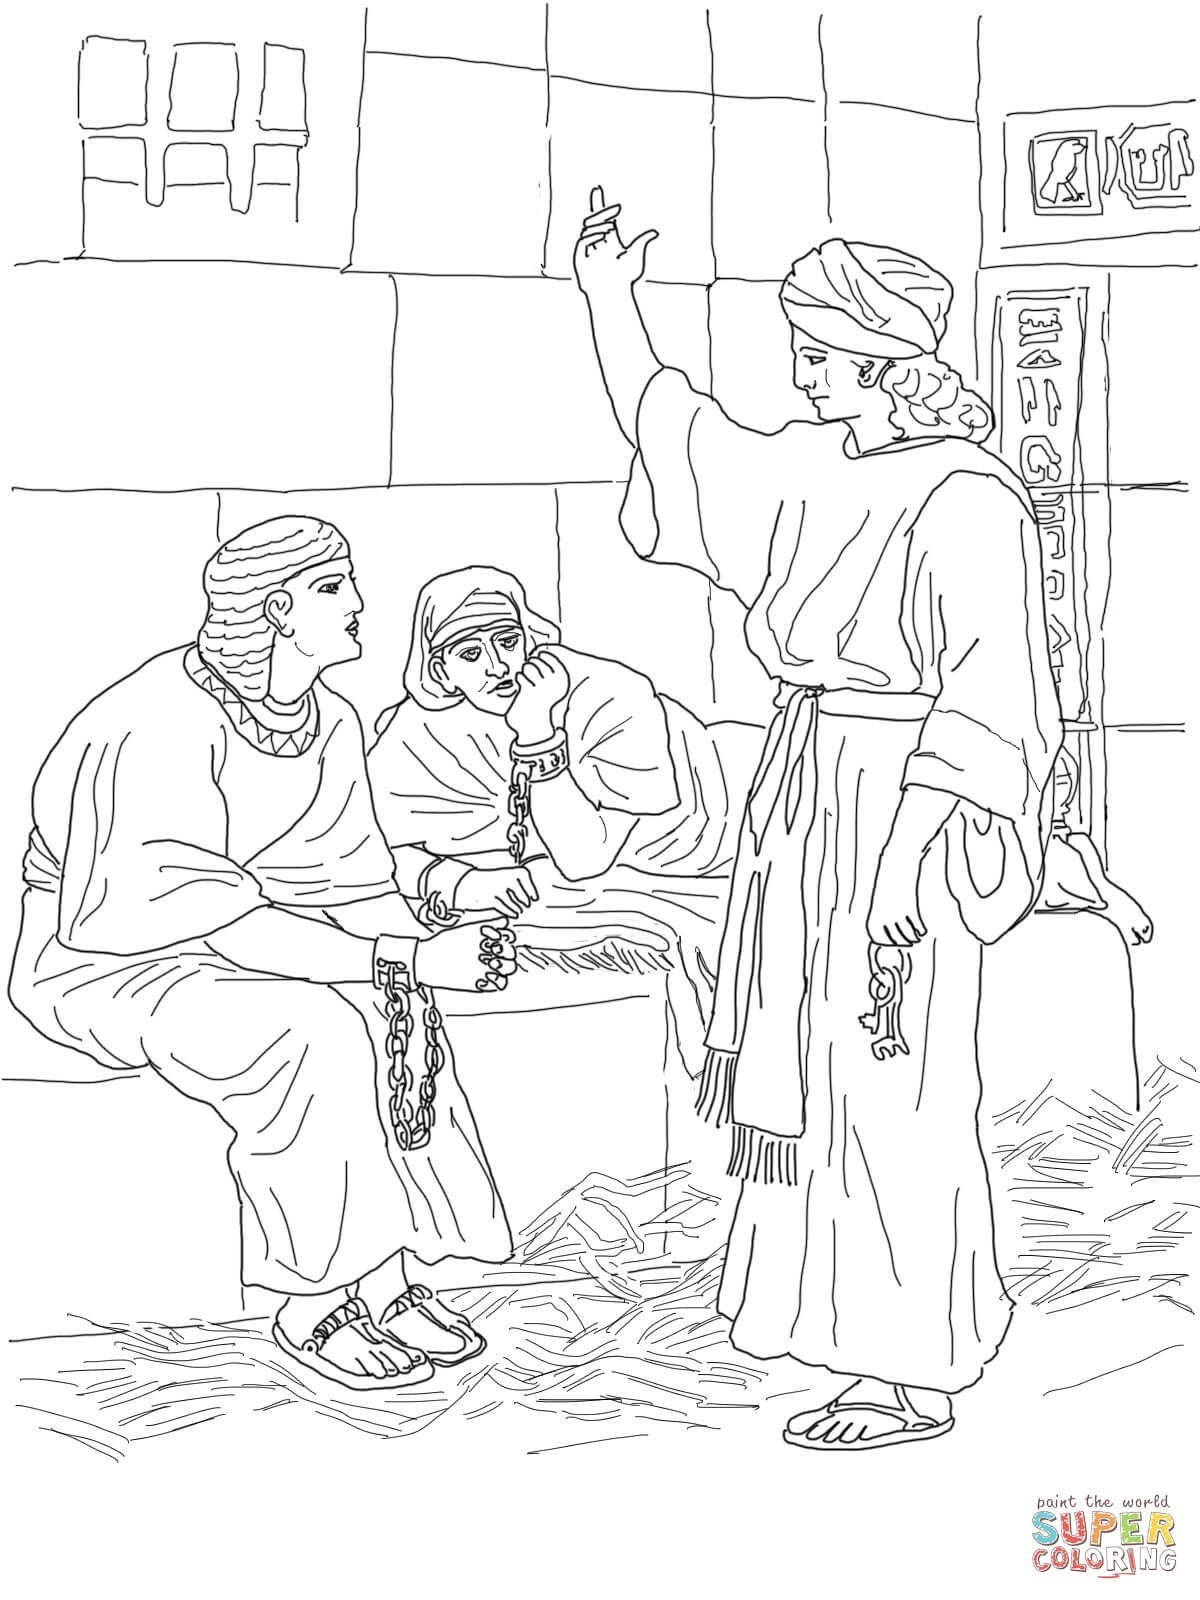 Joseph In Prison Coloring Page | Free Printable Coloring Pages - Free Printable Bible Story Coloring Pages